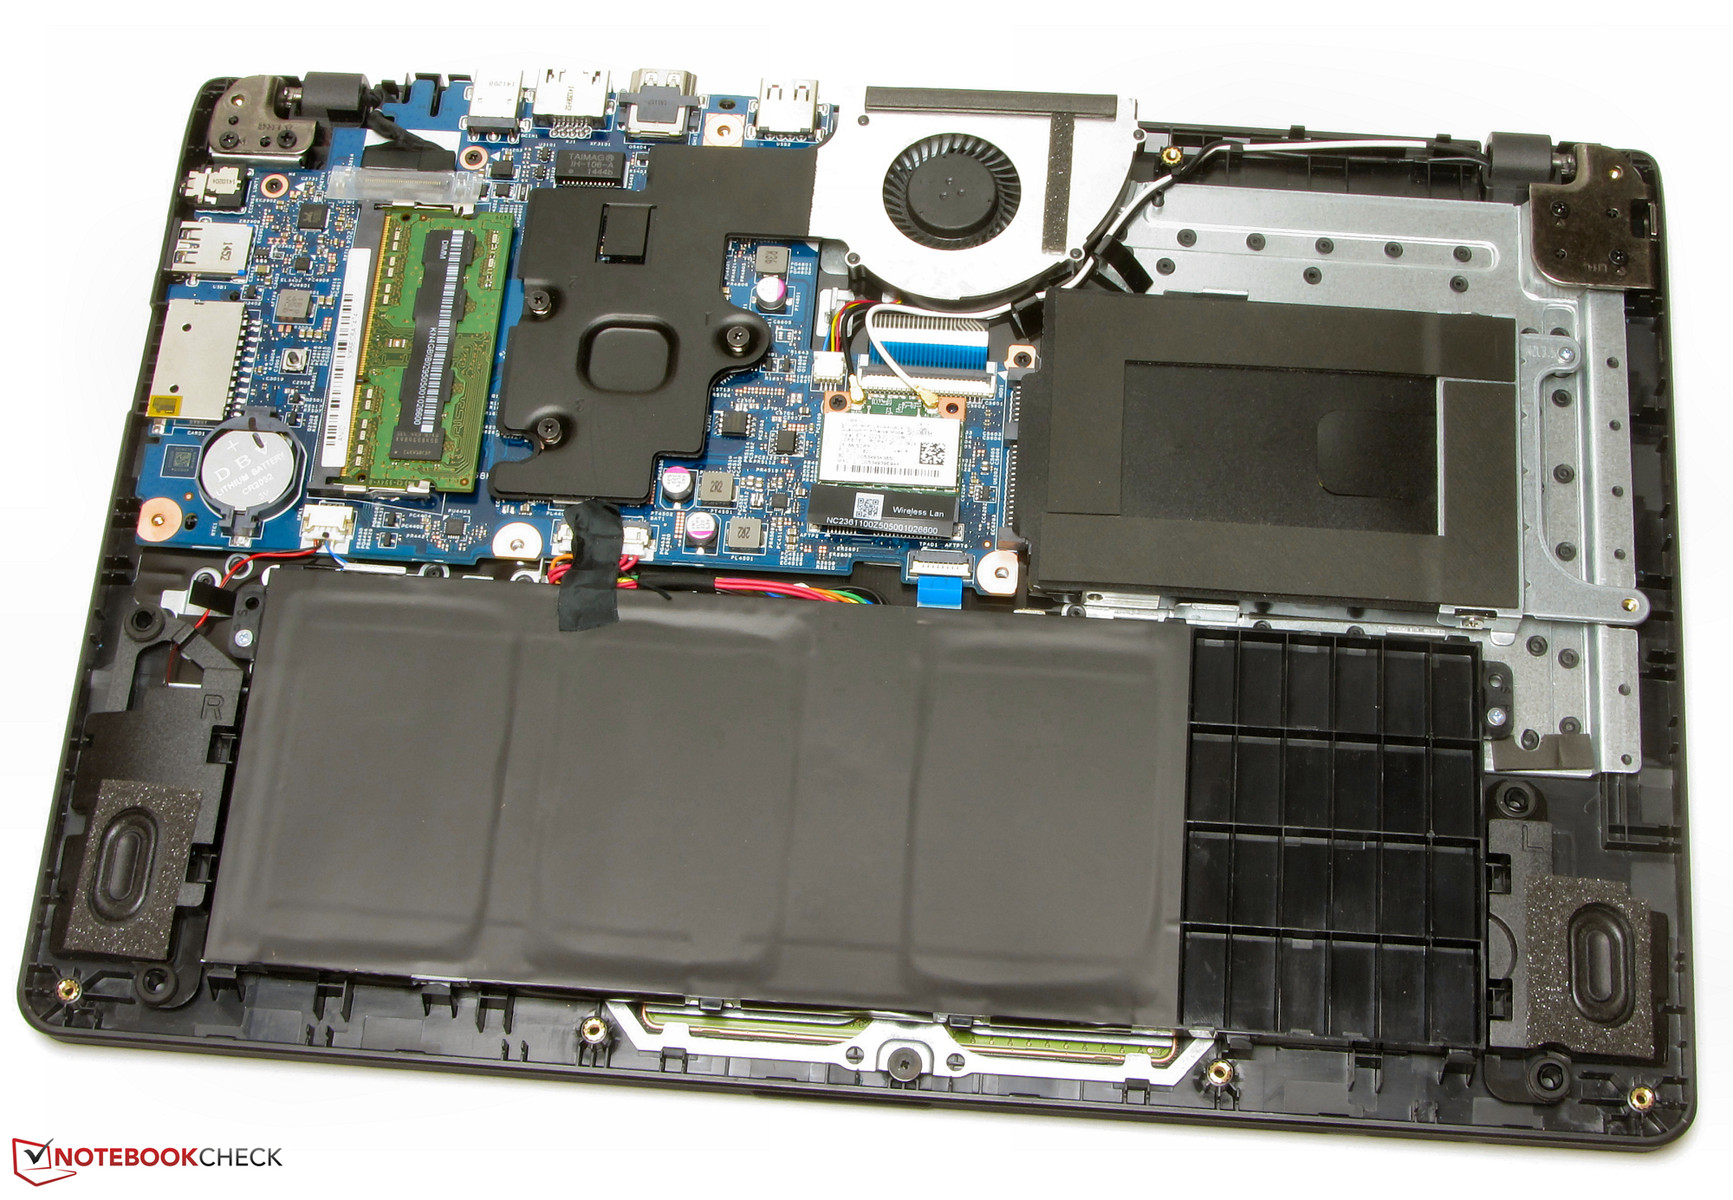 The base unit's underside can be removed.